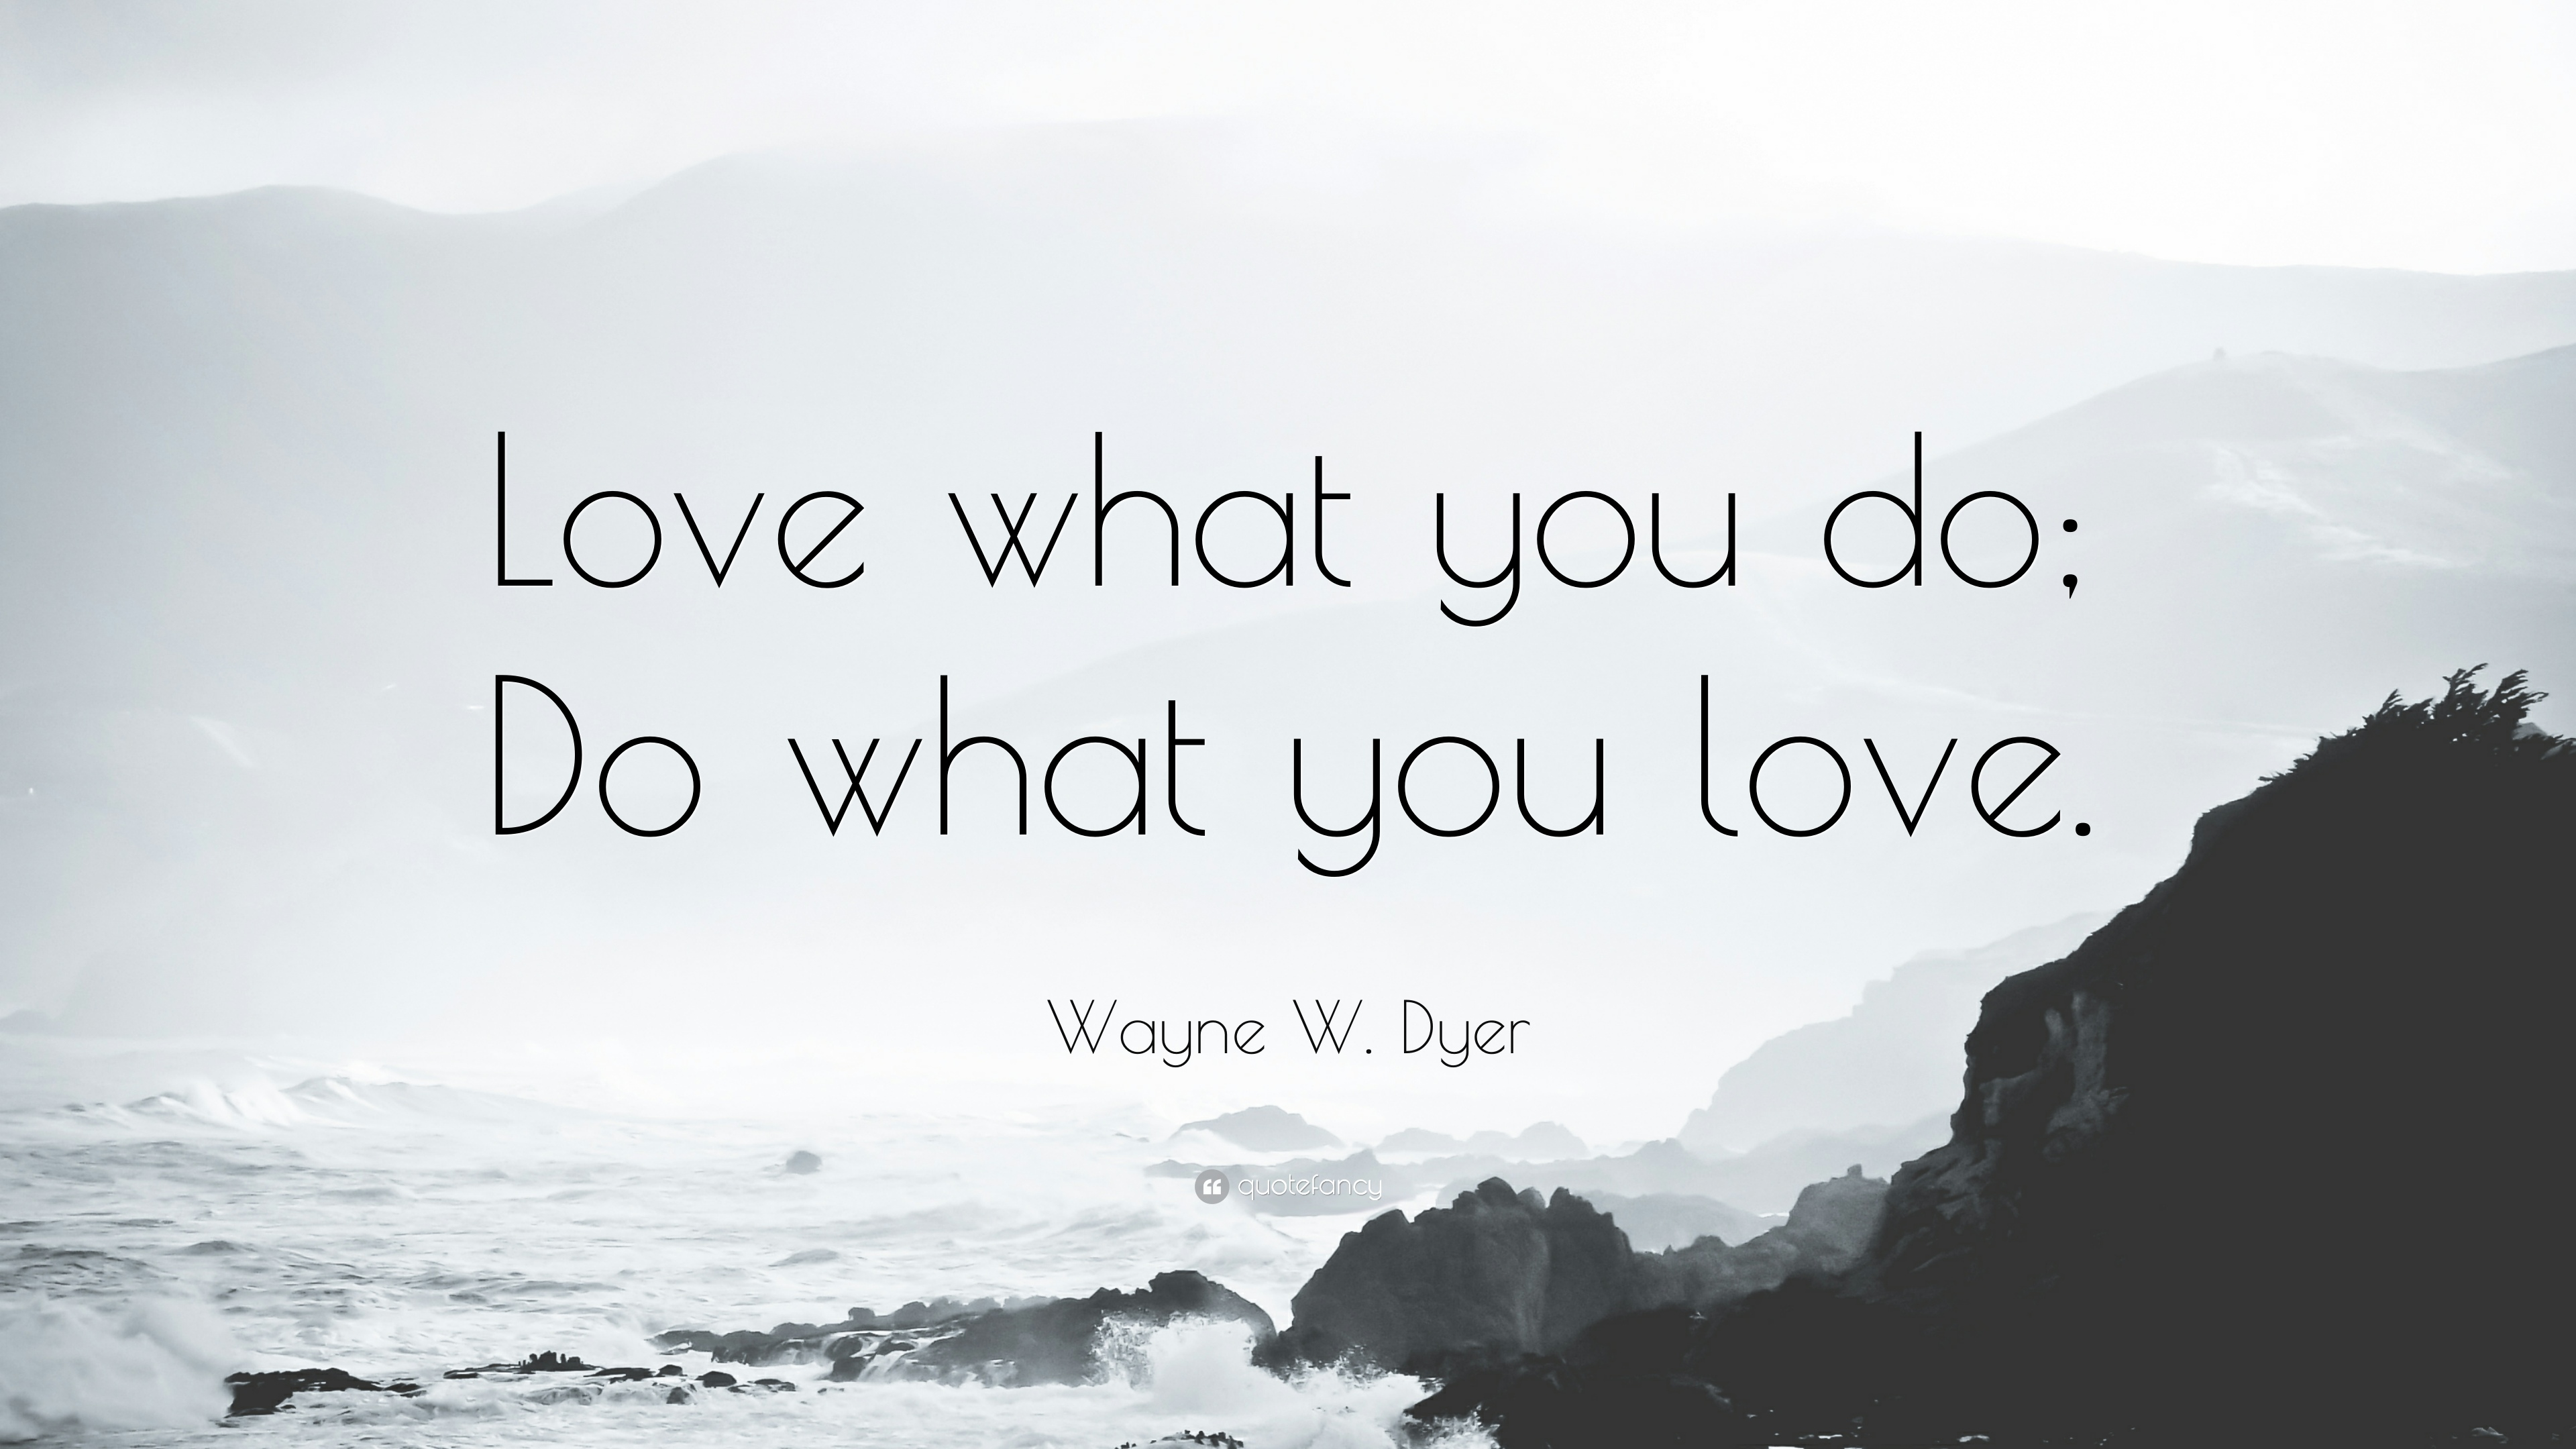 Wayne W Dyer Quote Love What You Do Do What You Love 21